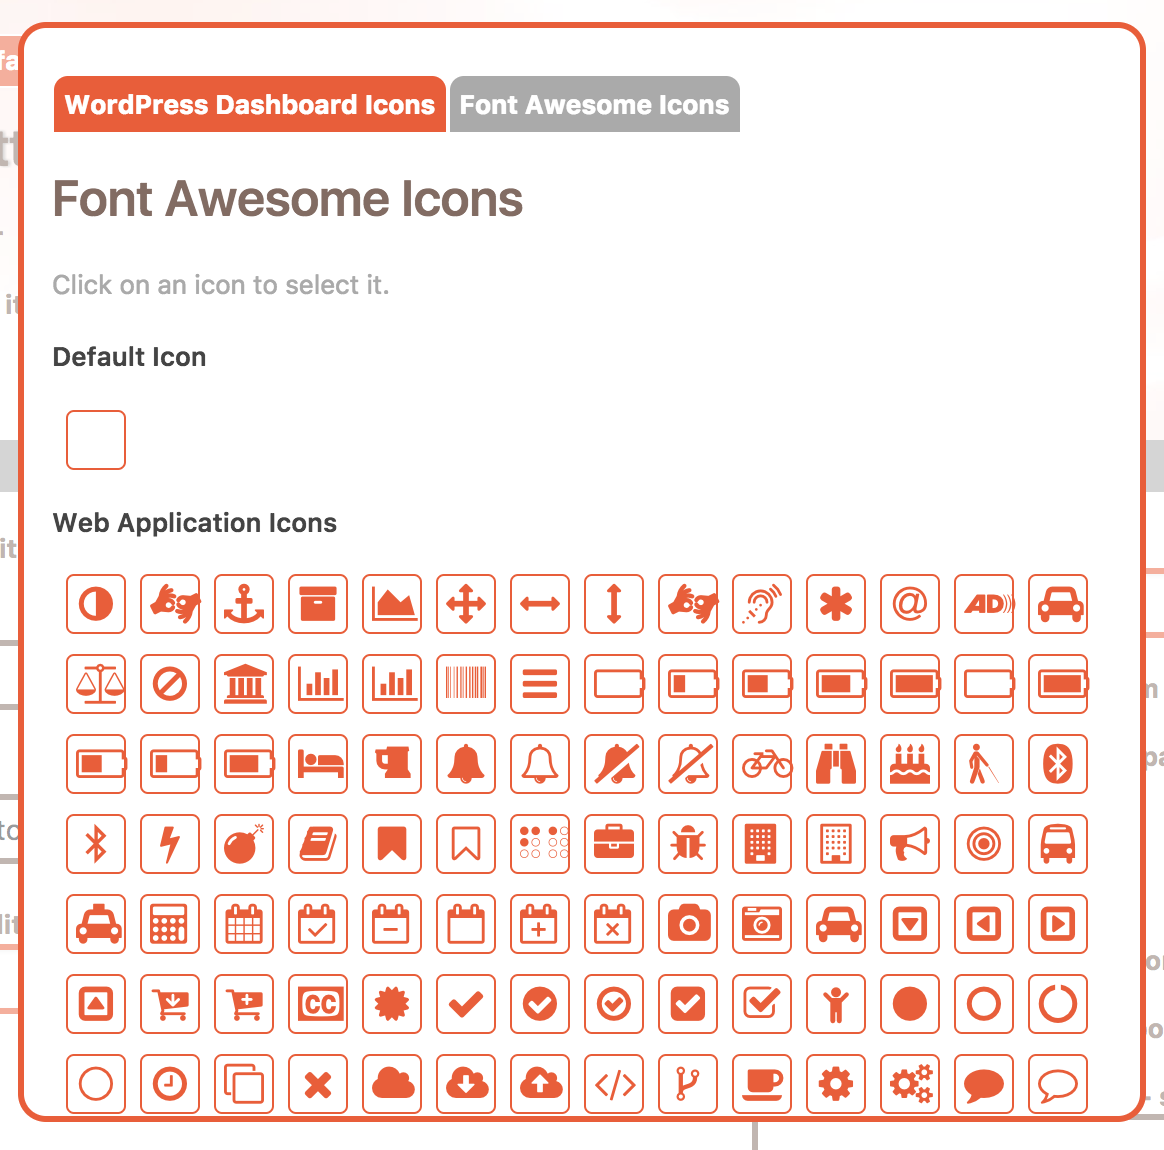 Font Awesome icons in the Cusmin icon picker